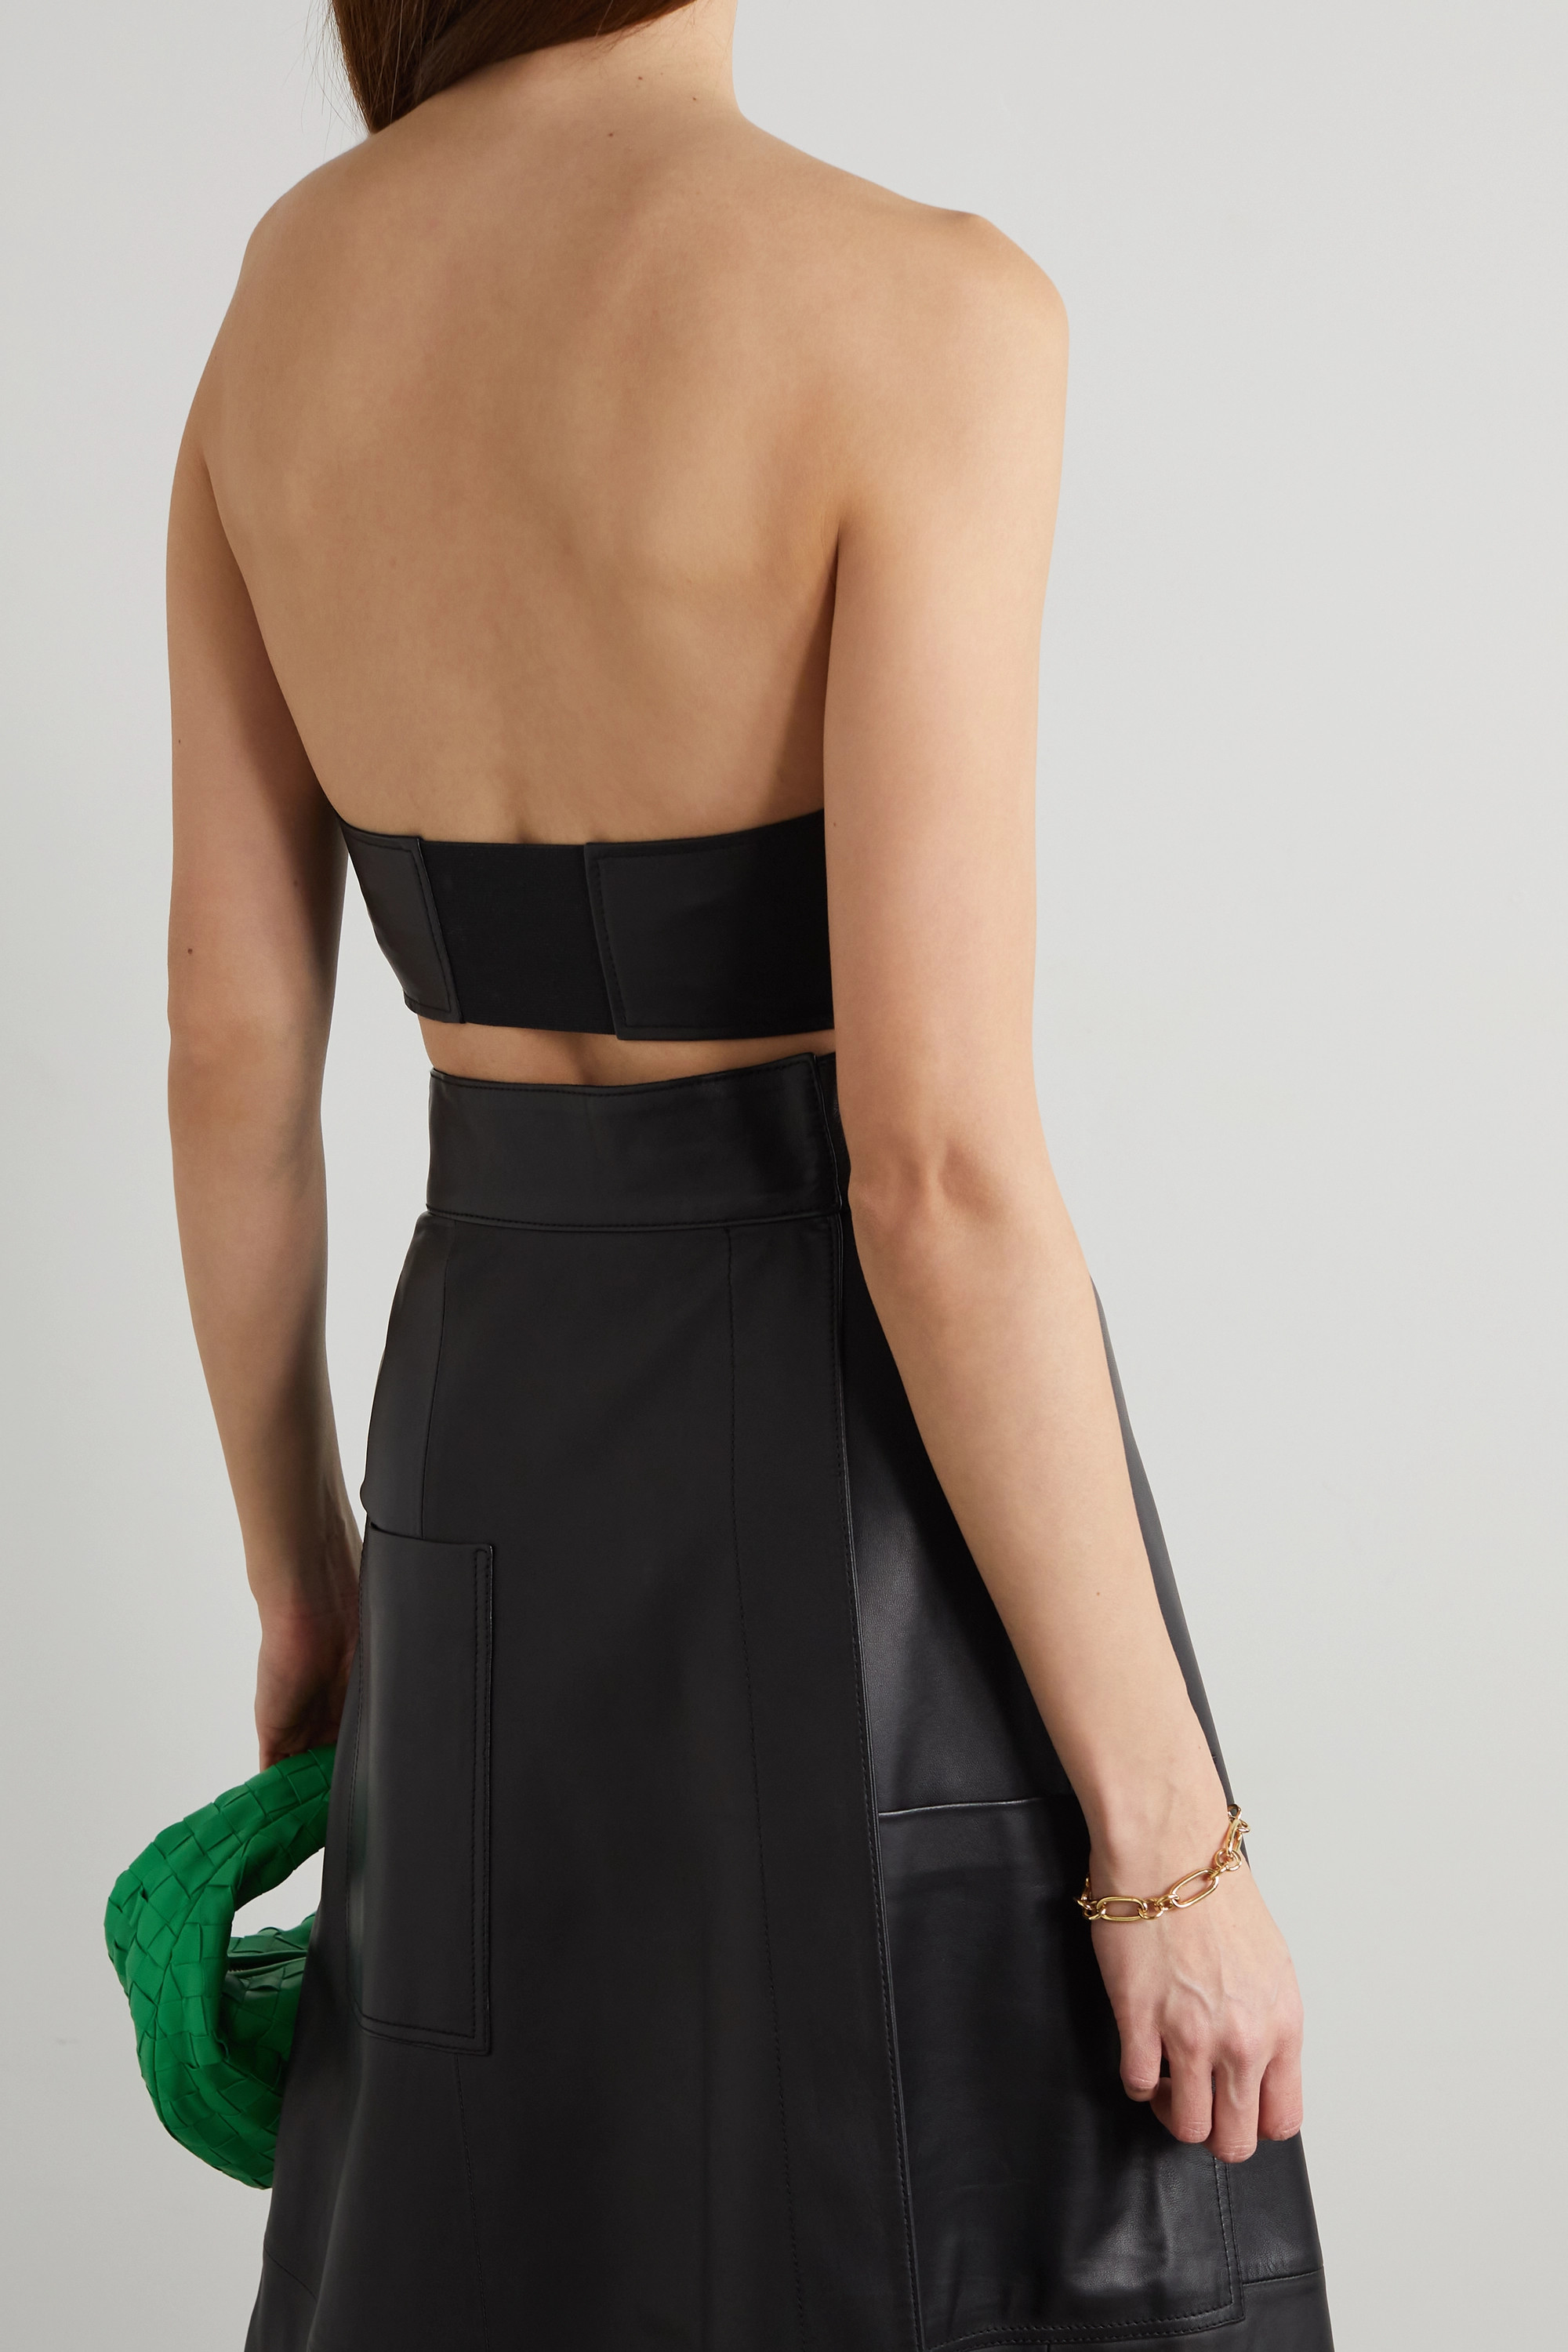 Tibi Cropped leather bustier top